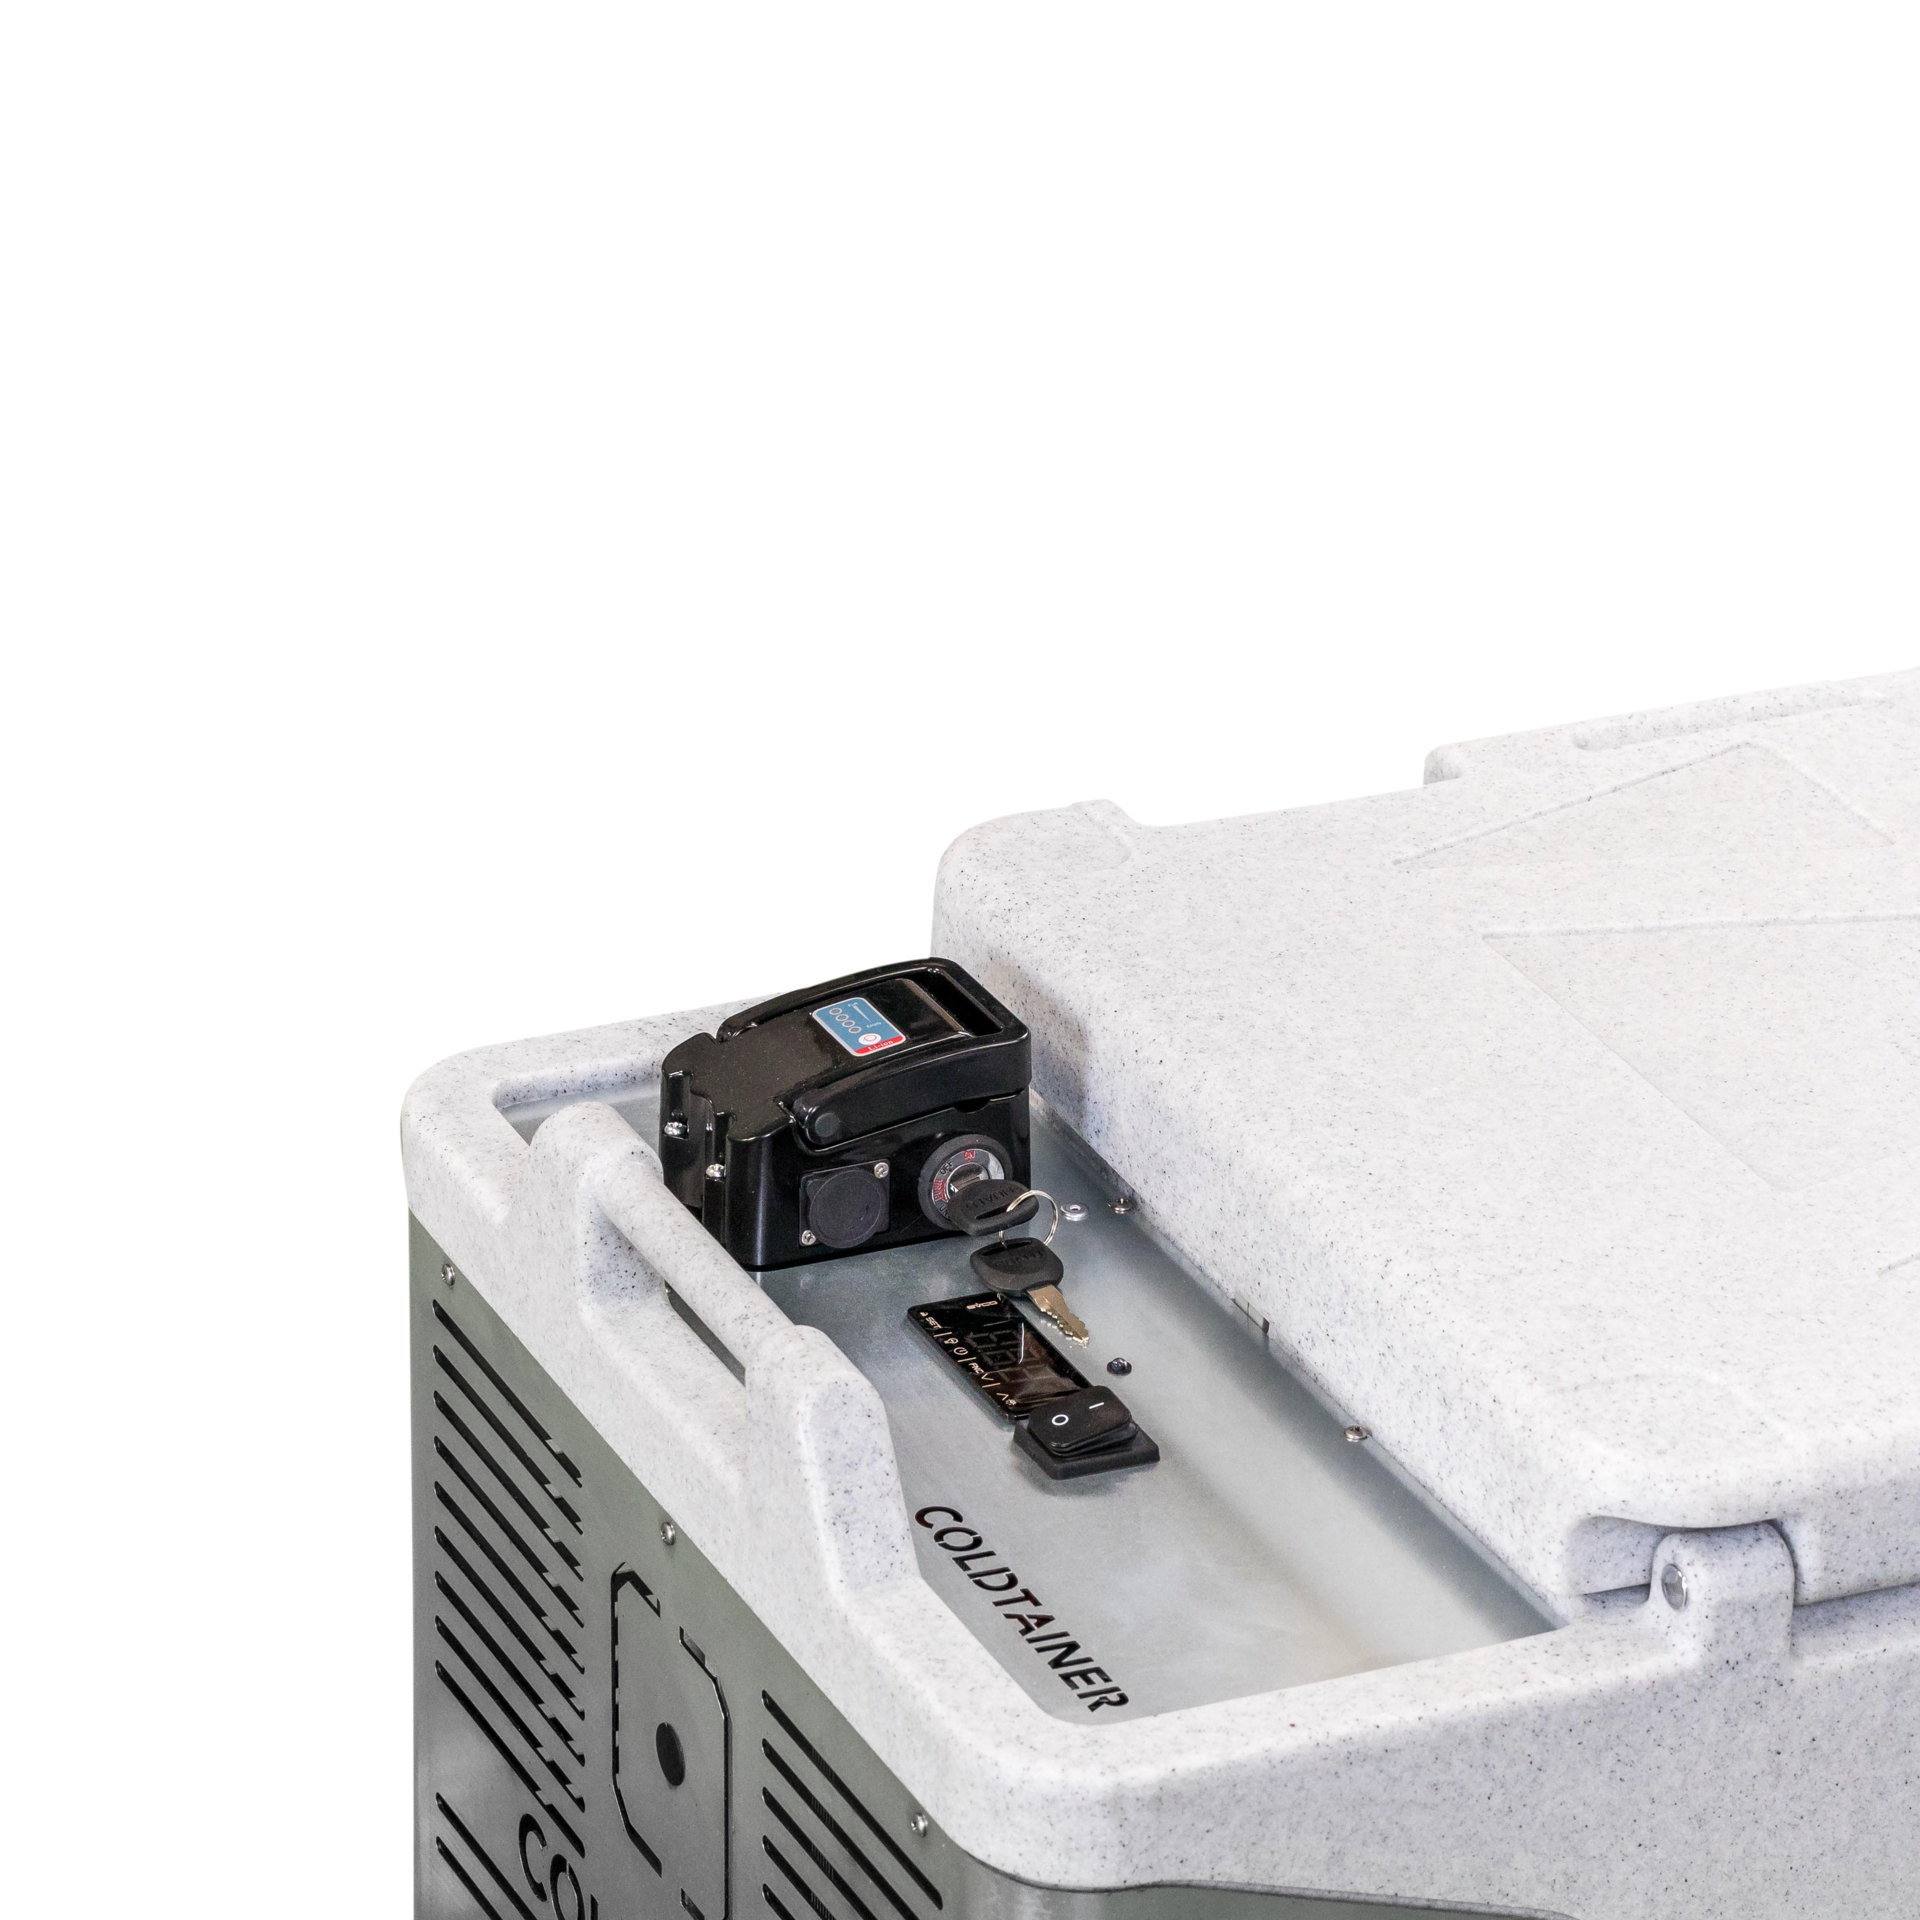 Coldtainer_T0056-T0082_AuO_battery _lr